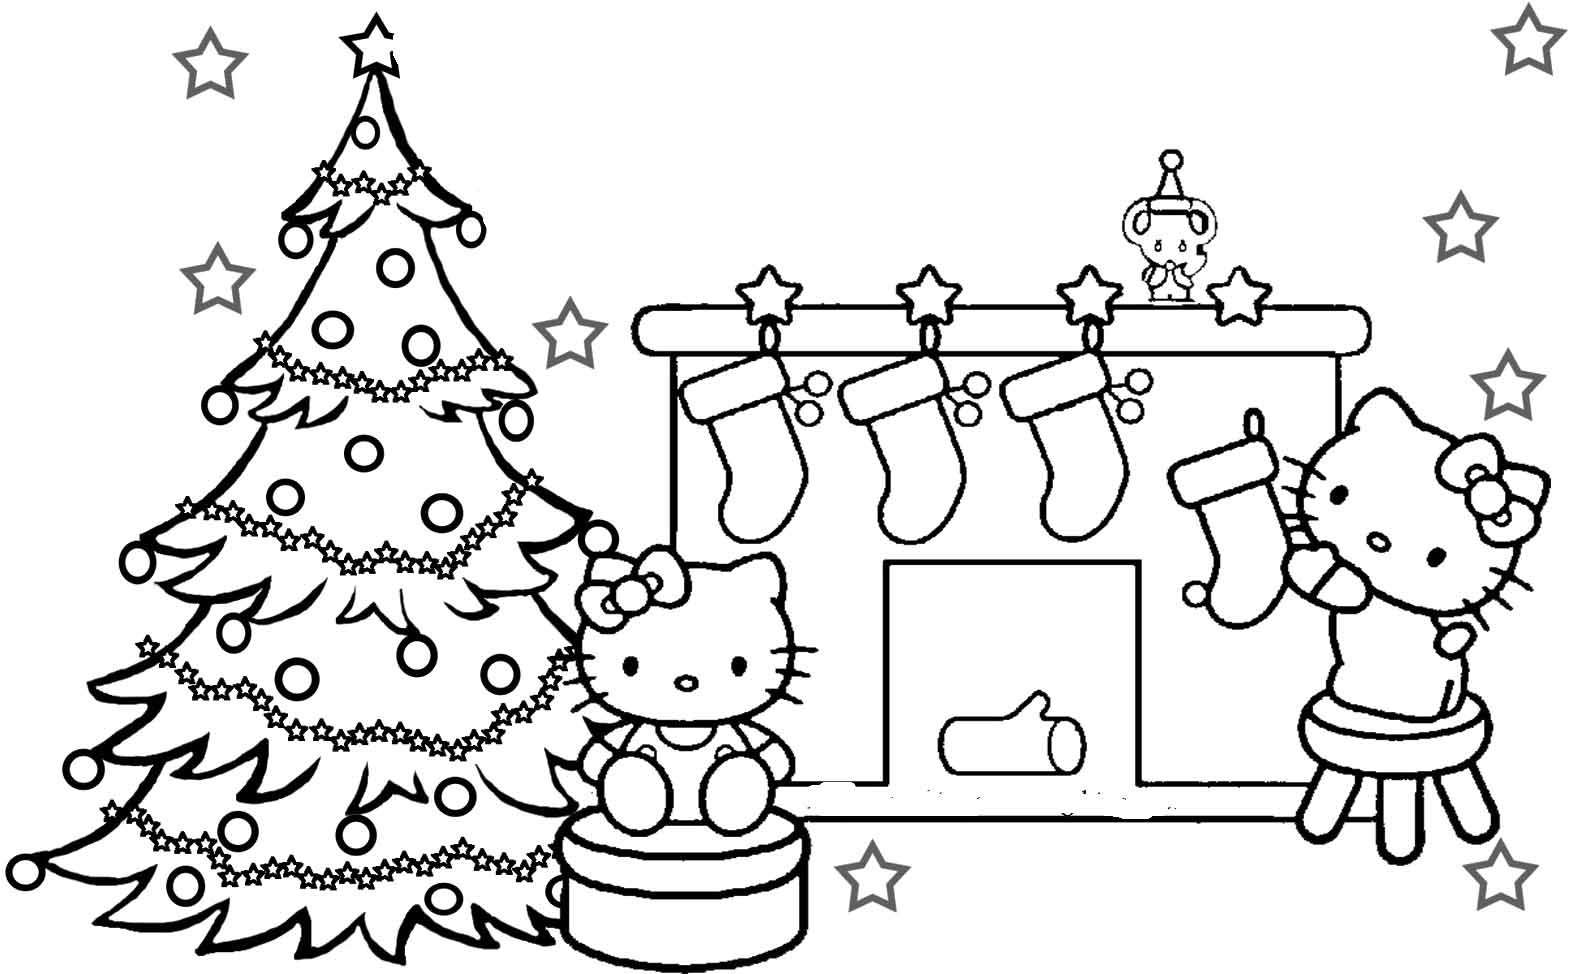 Christmas Coloring Sheets For Kids Free  Christmas Coloring Pages For Kids Printable Coloring Home